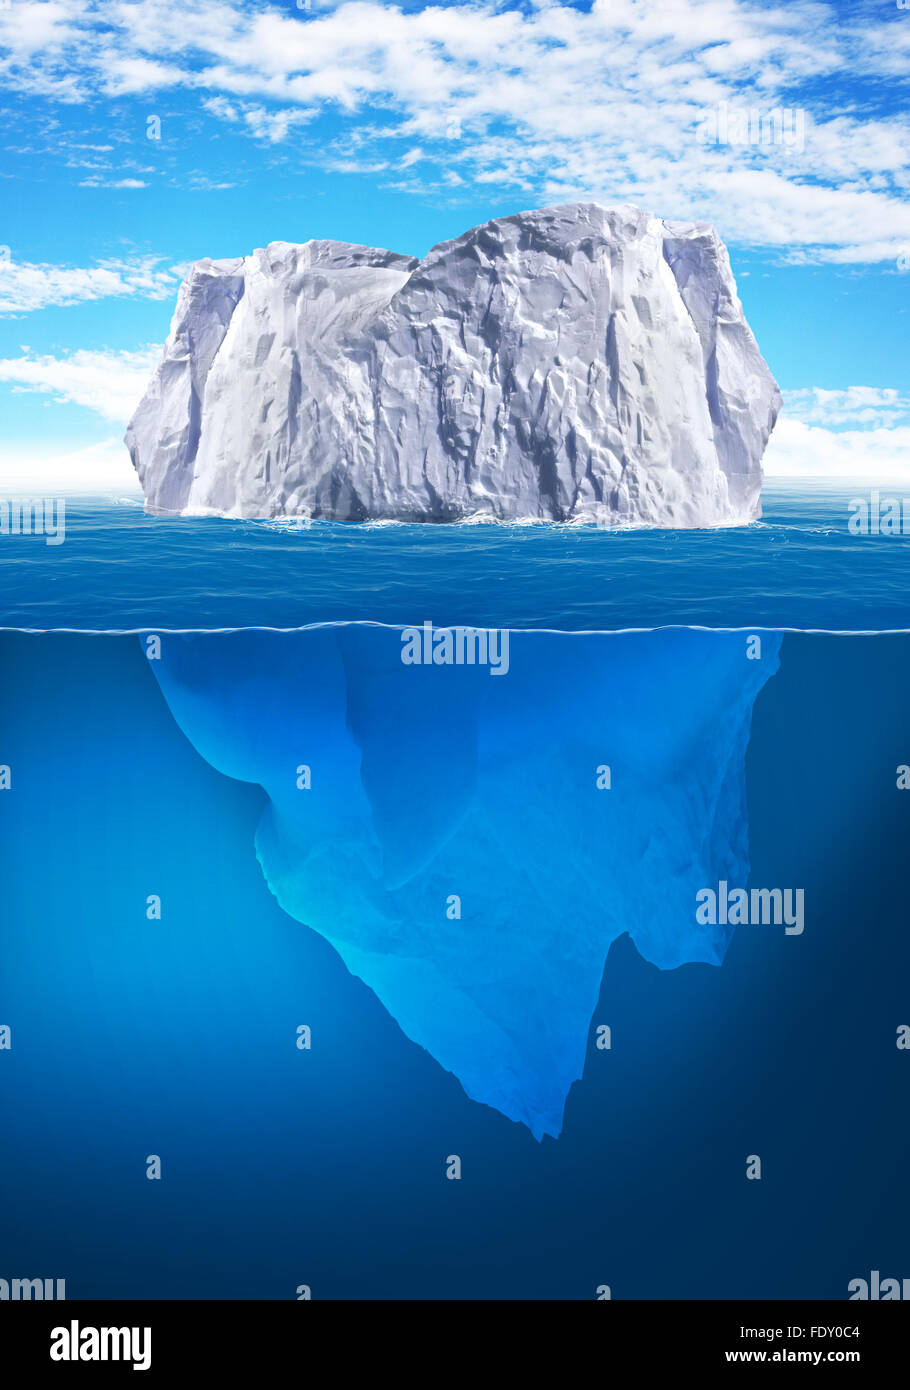 Antarctic iceberg in the ocean. Beautiful polar sea background. Stock Photo